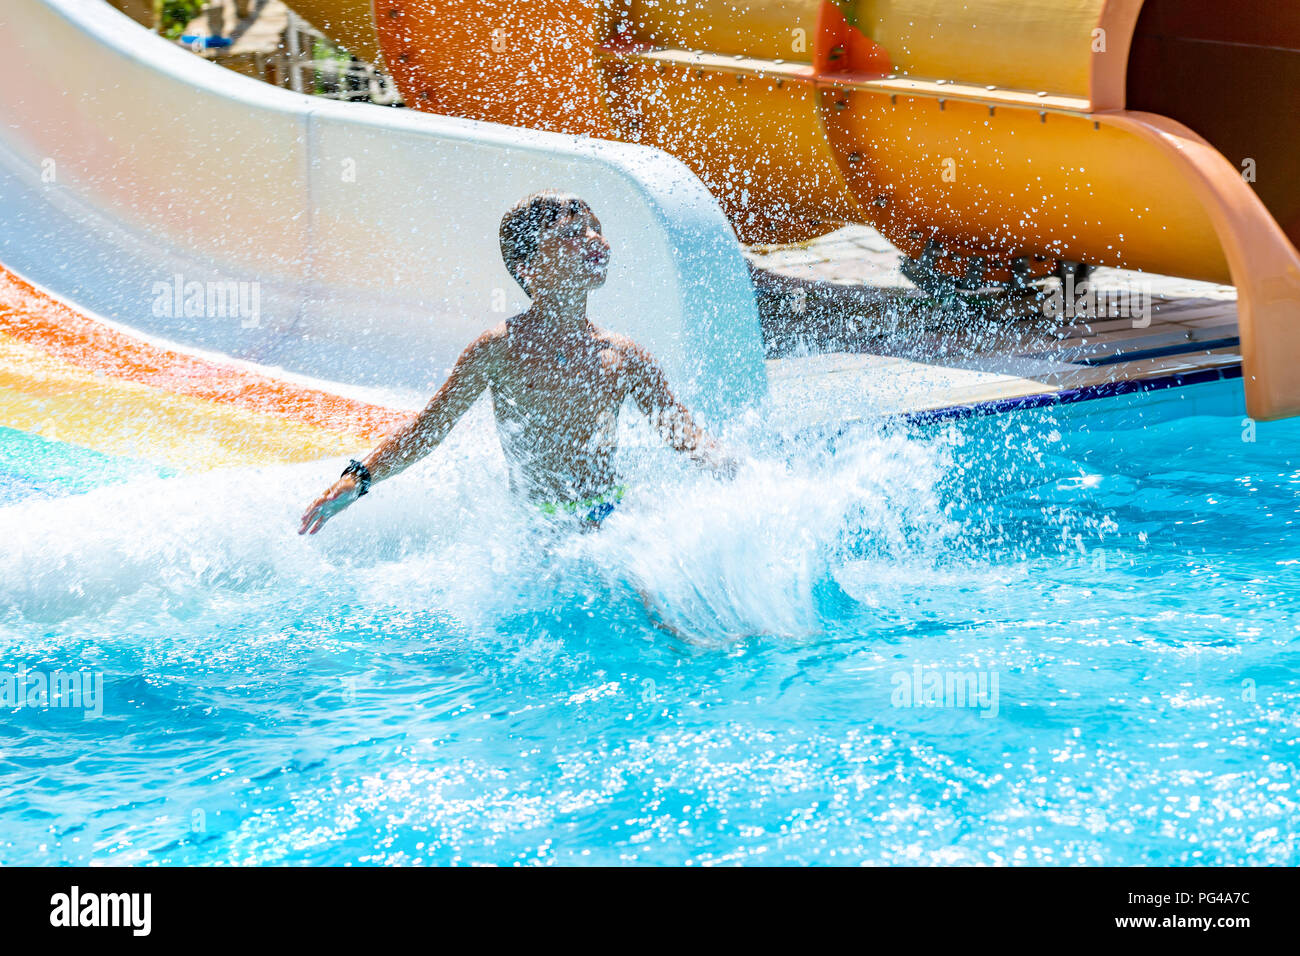 A happy boy on water slide in a swimming pool having fun during summer vacation in a beautiful aqua park. A boy slithering down the water slide and making splashes. - Stock Image